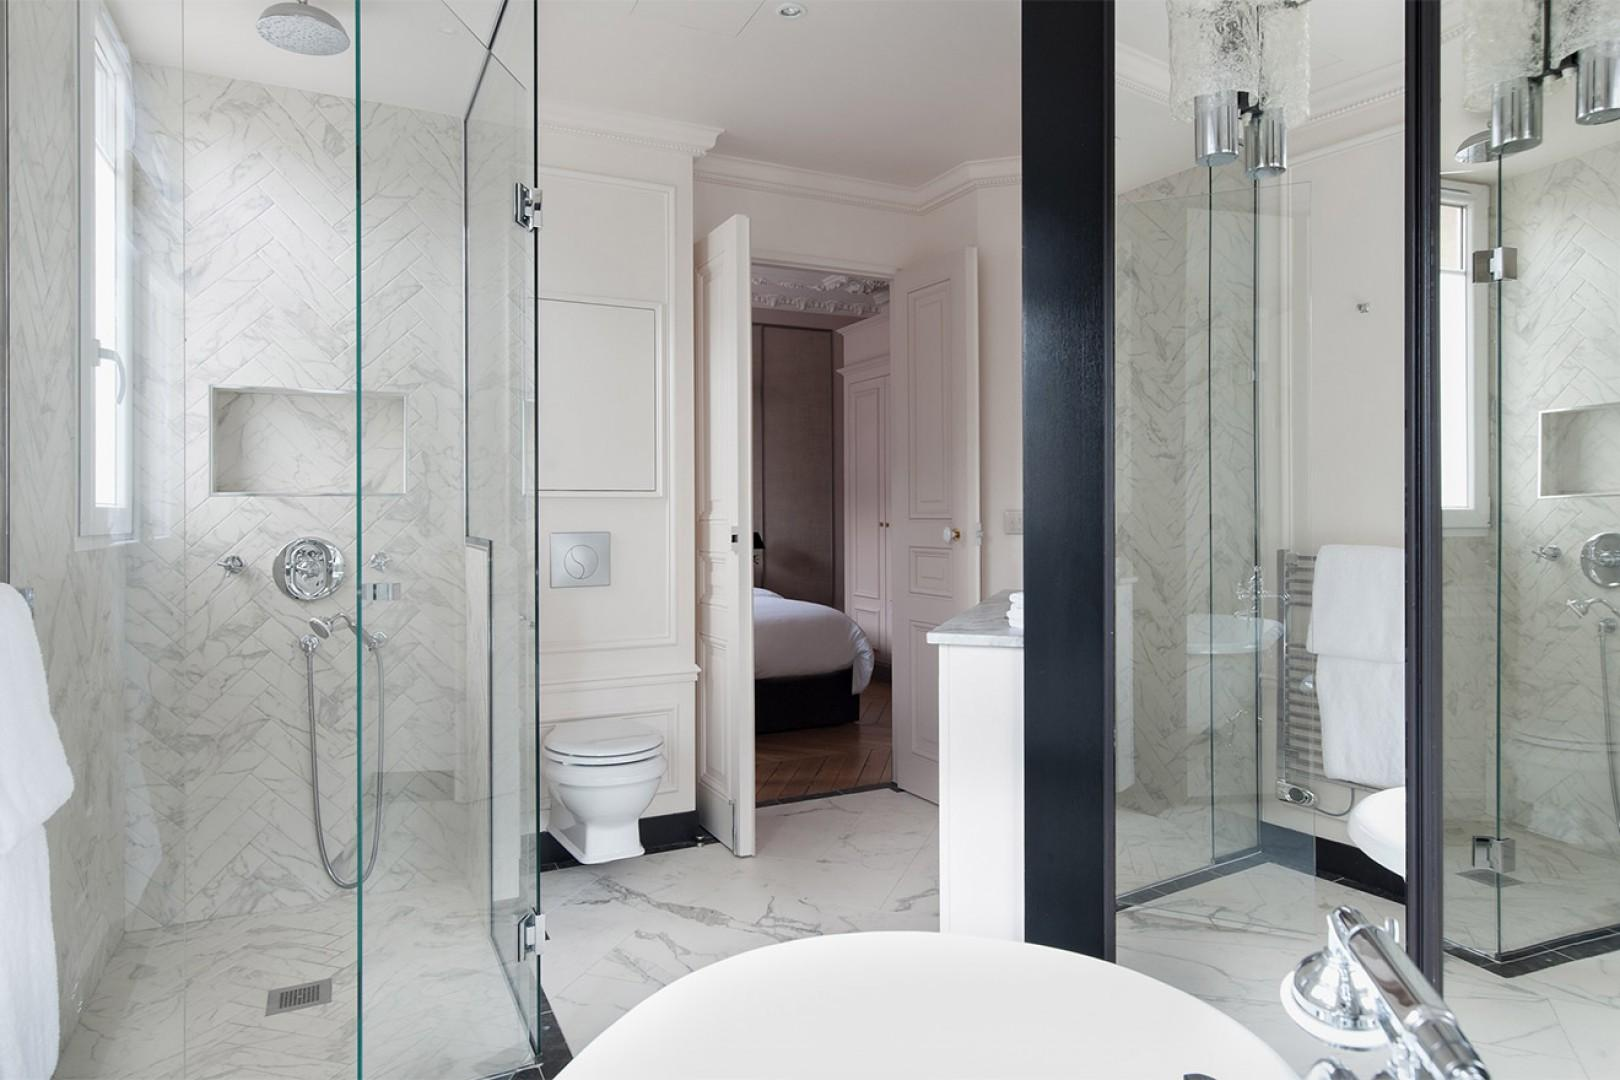 Enjoy the large shower with fixed and flexible shower heads in the en suite bathroom.